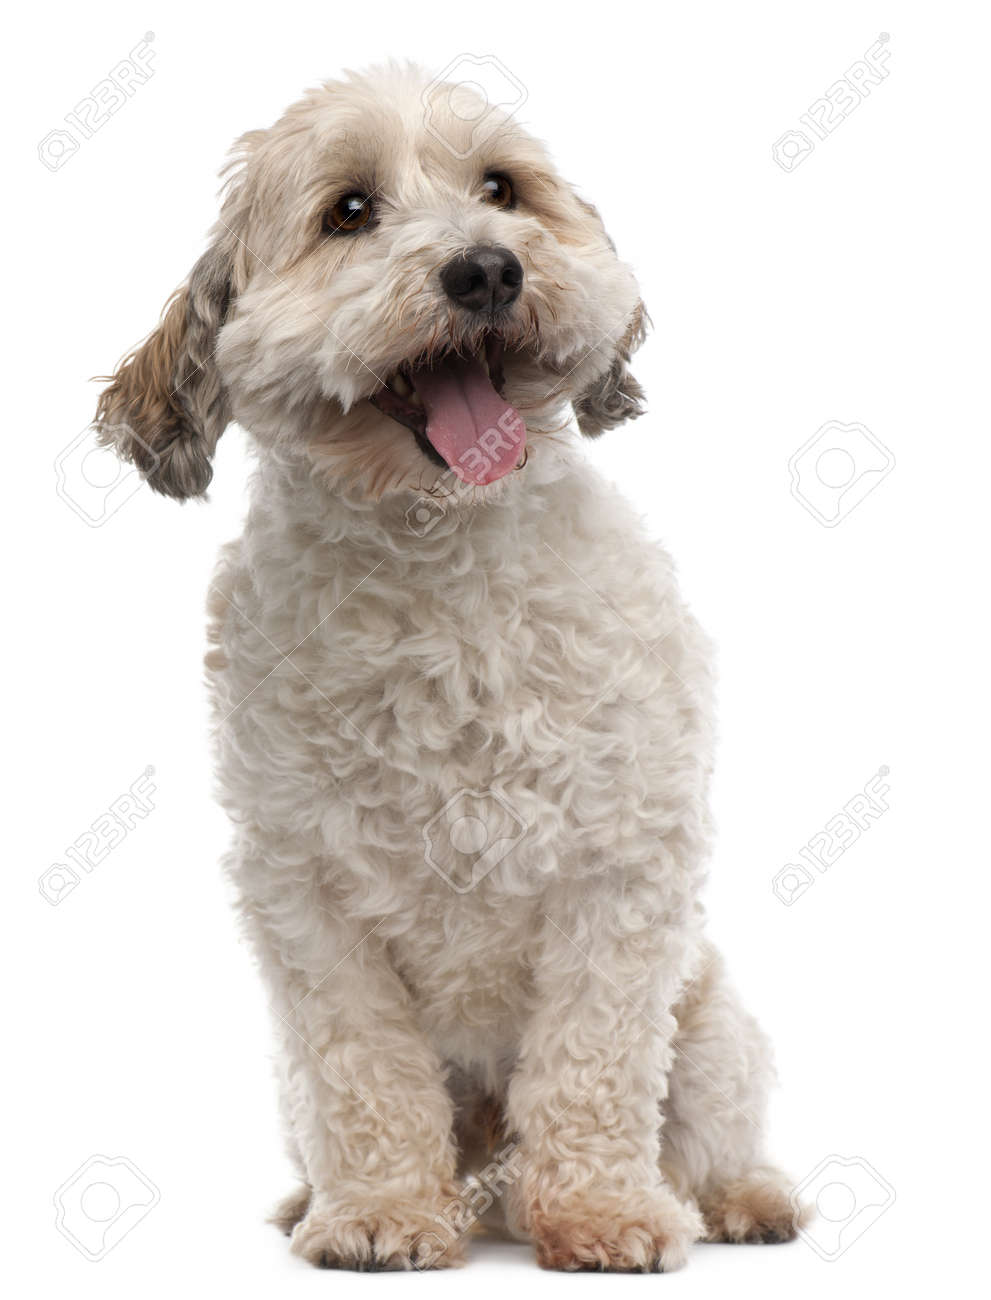 Cross breed dog, 8 years old, sitting in front of white background Stock Photo - 8029615